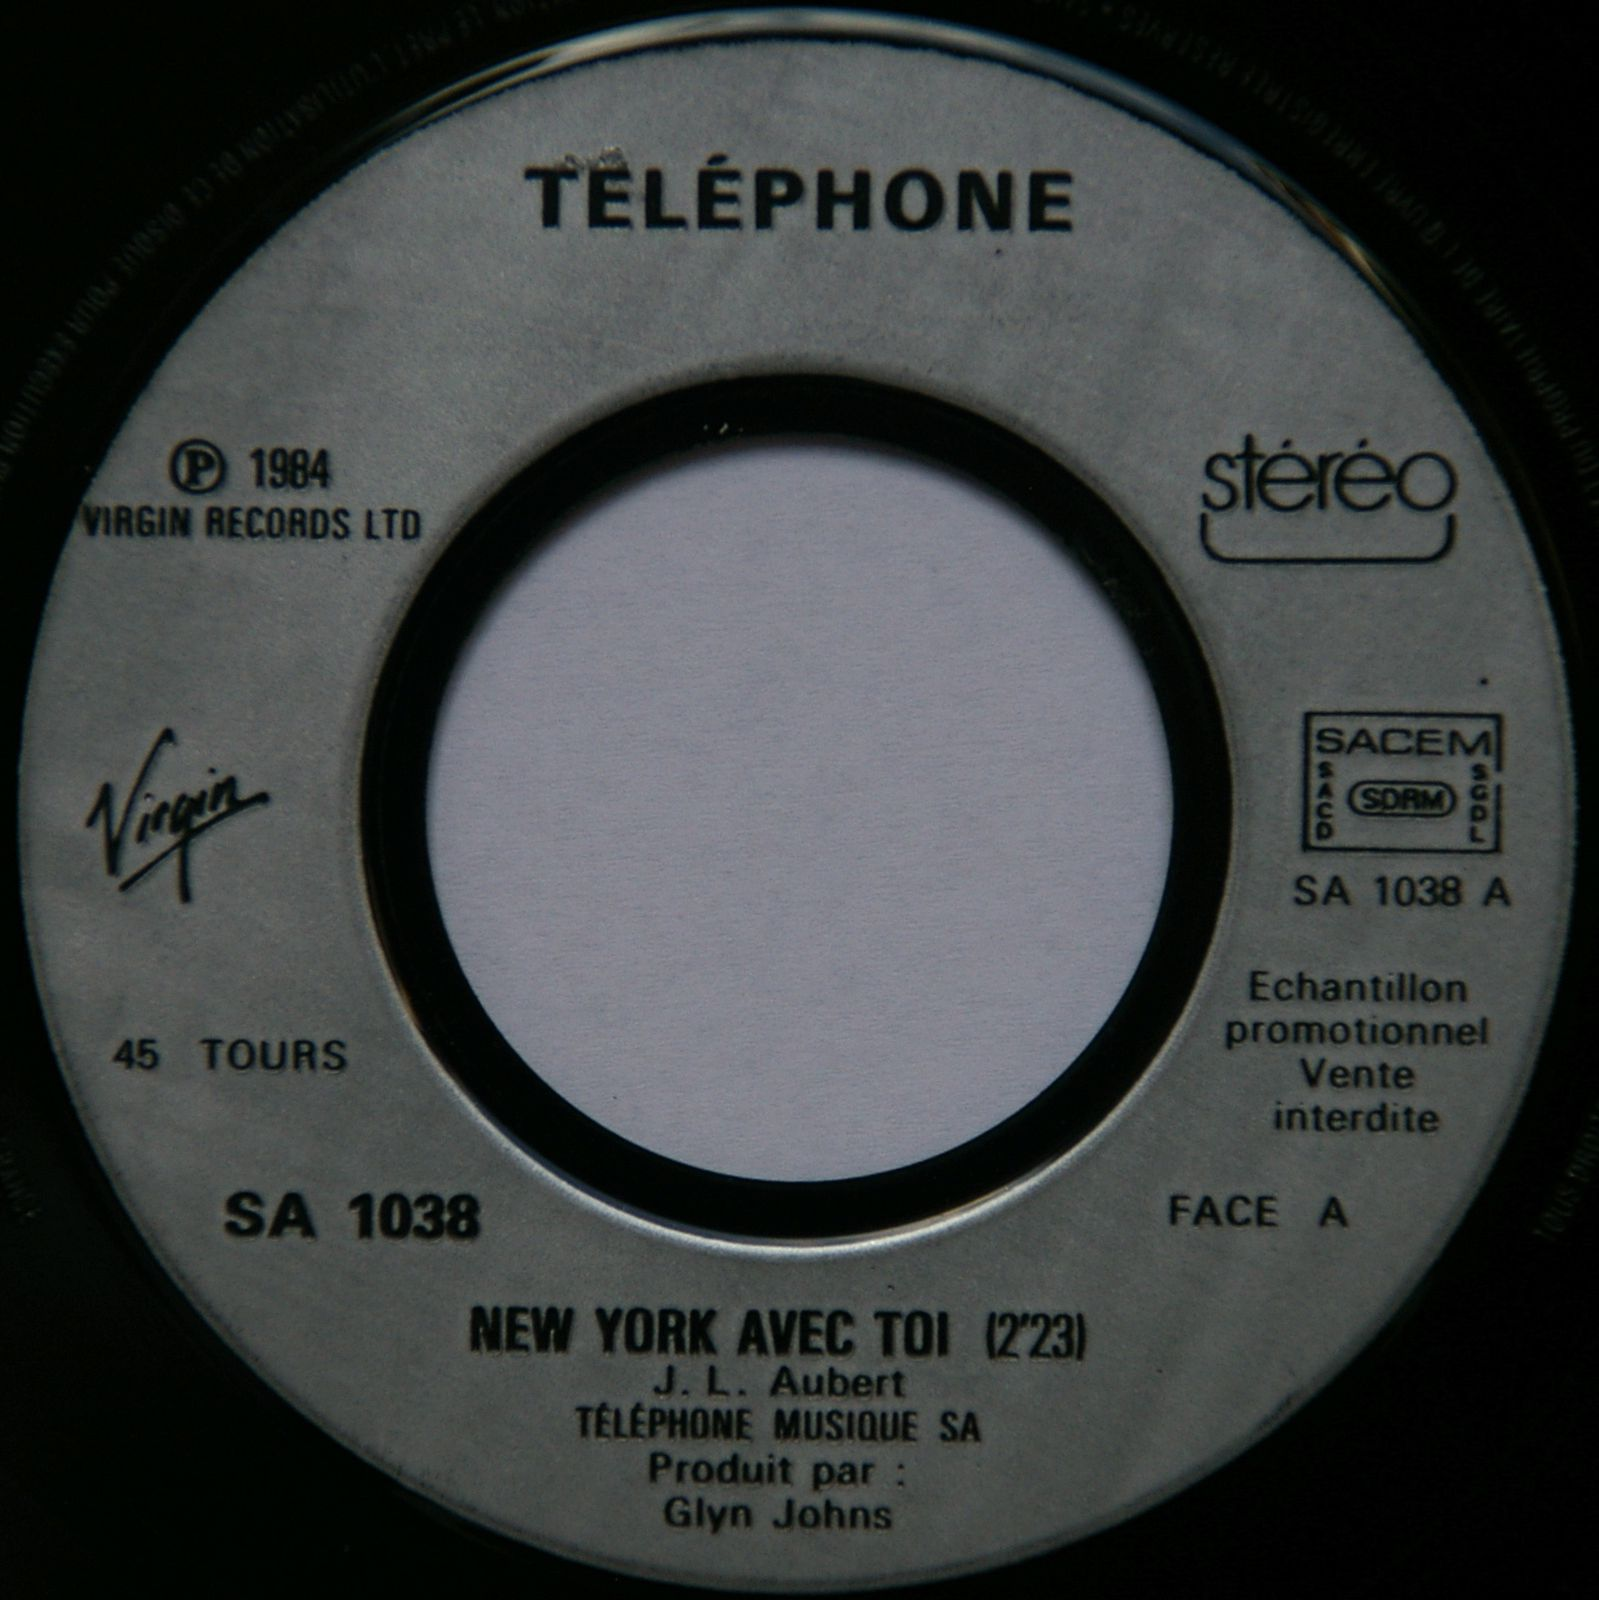 Telephone new york avec toi in paris pressage promo mes vinyles du groupe telephone - New york avec toi ...